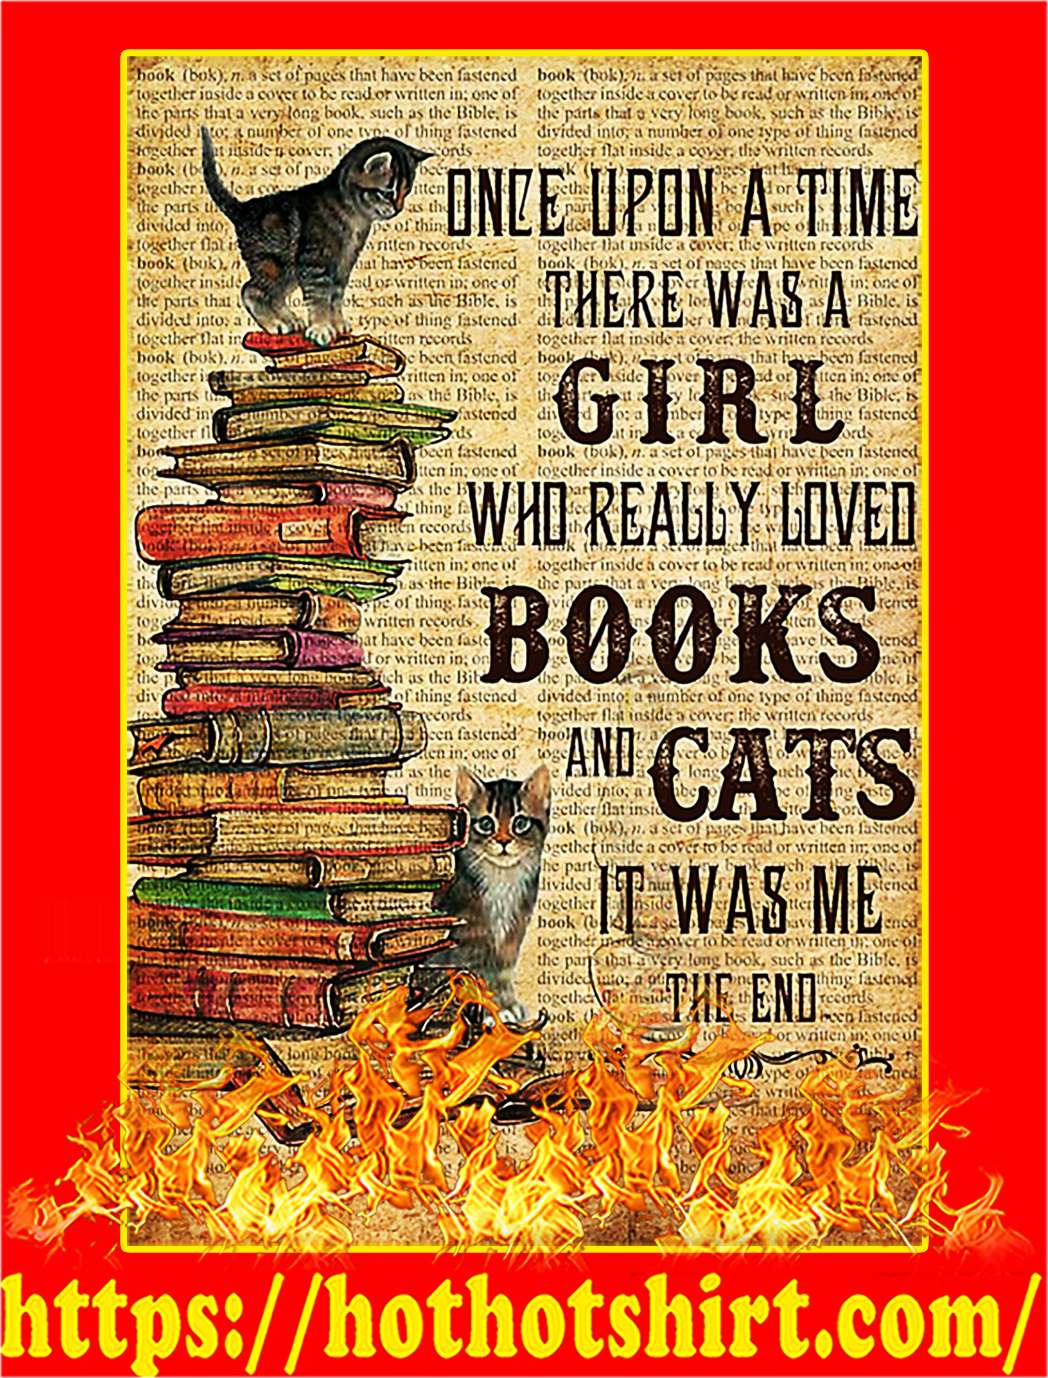 Once Upon A Time There Was A Girl Who Really Loved Books And Cats Poster - A2